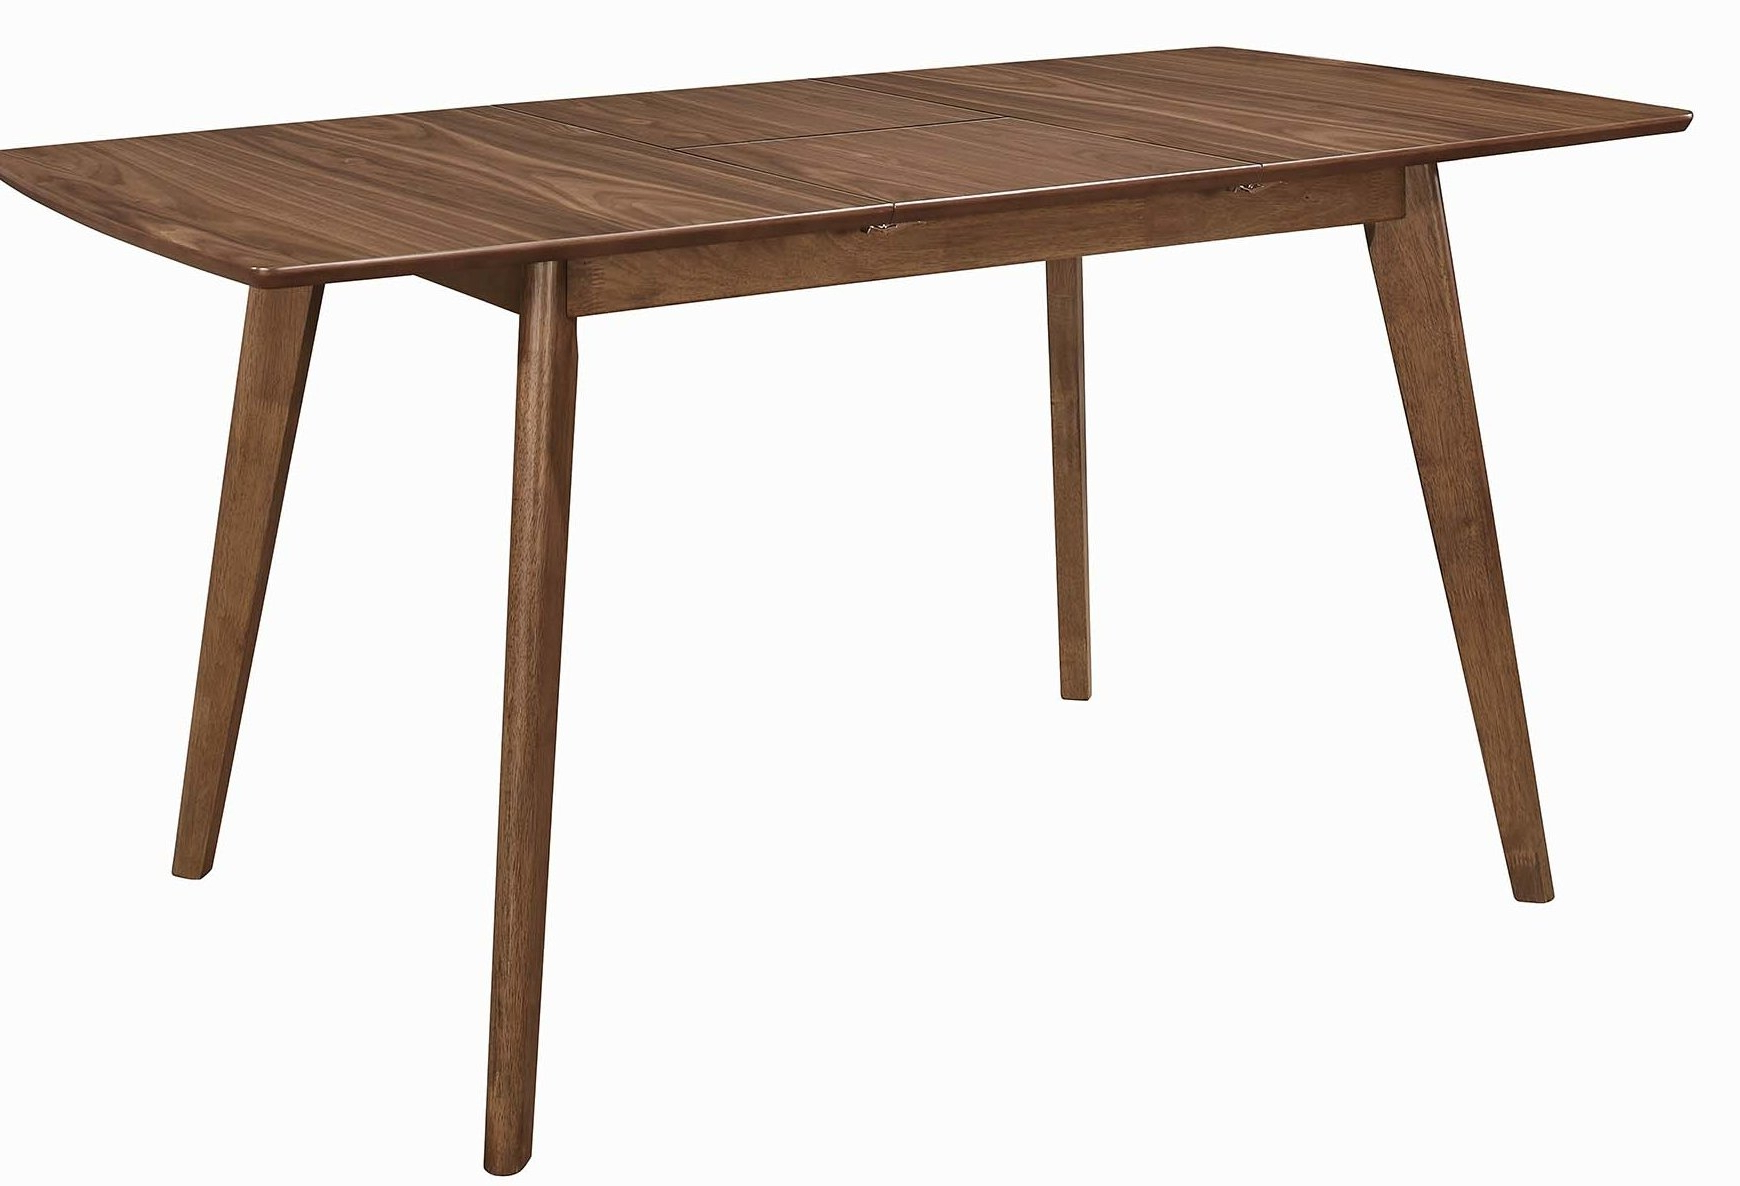 Antique White Shayne Drop Leaf Kitchen Tables Inside Most Recent George Oliver Fortunato Drop Leaf Dining Table – Saltandblues (View 17 of 25)